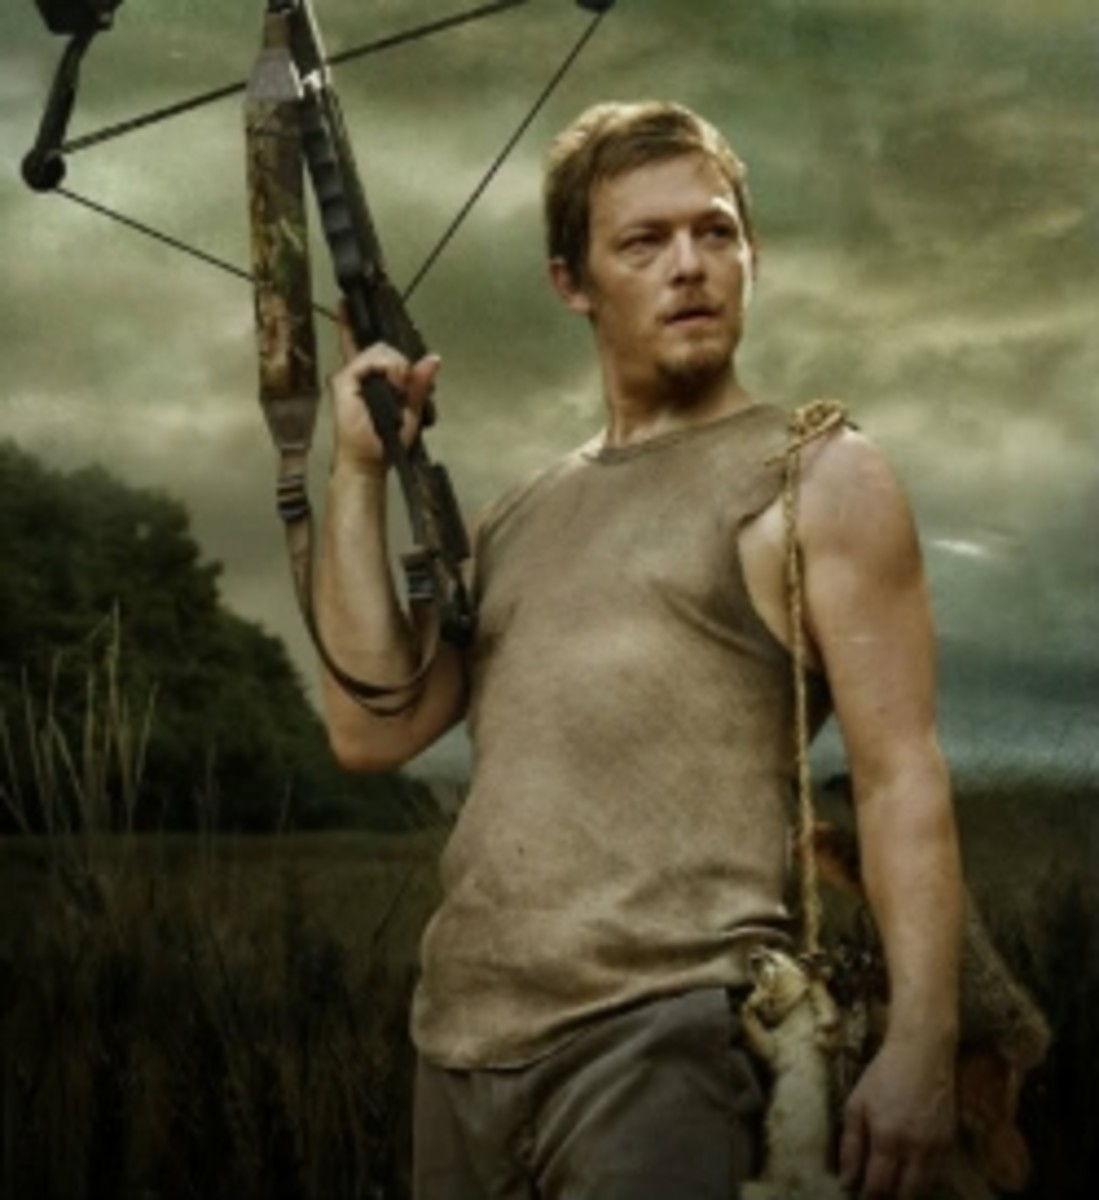 Dress Like Daryl Dixon from The Walking Dead